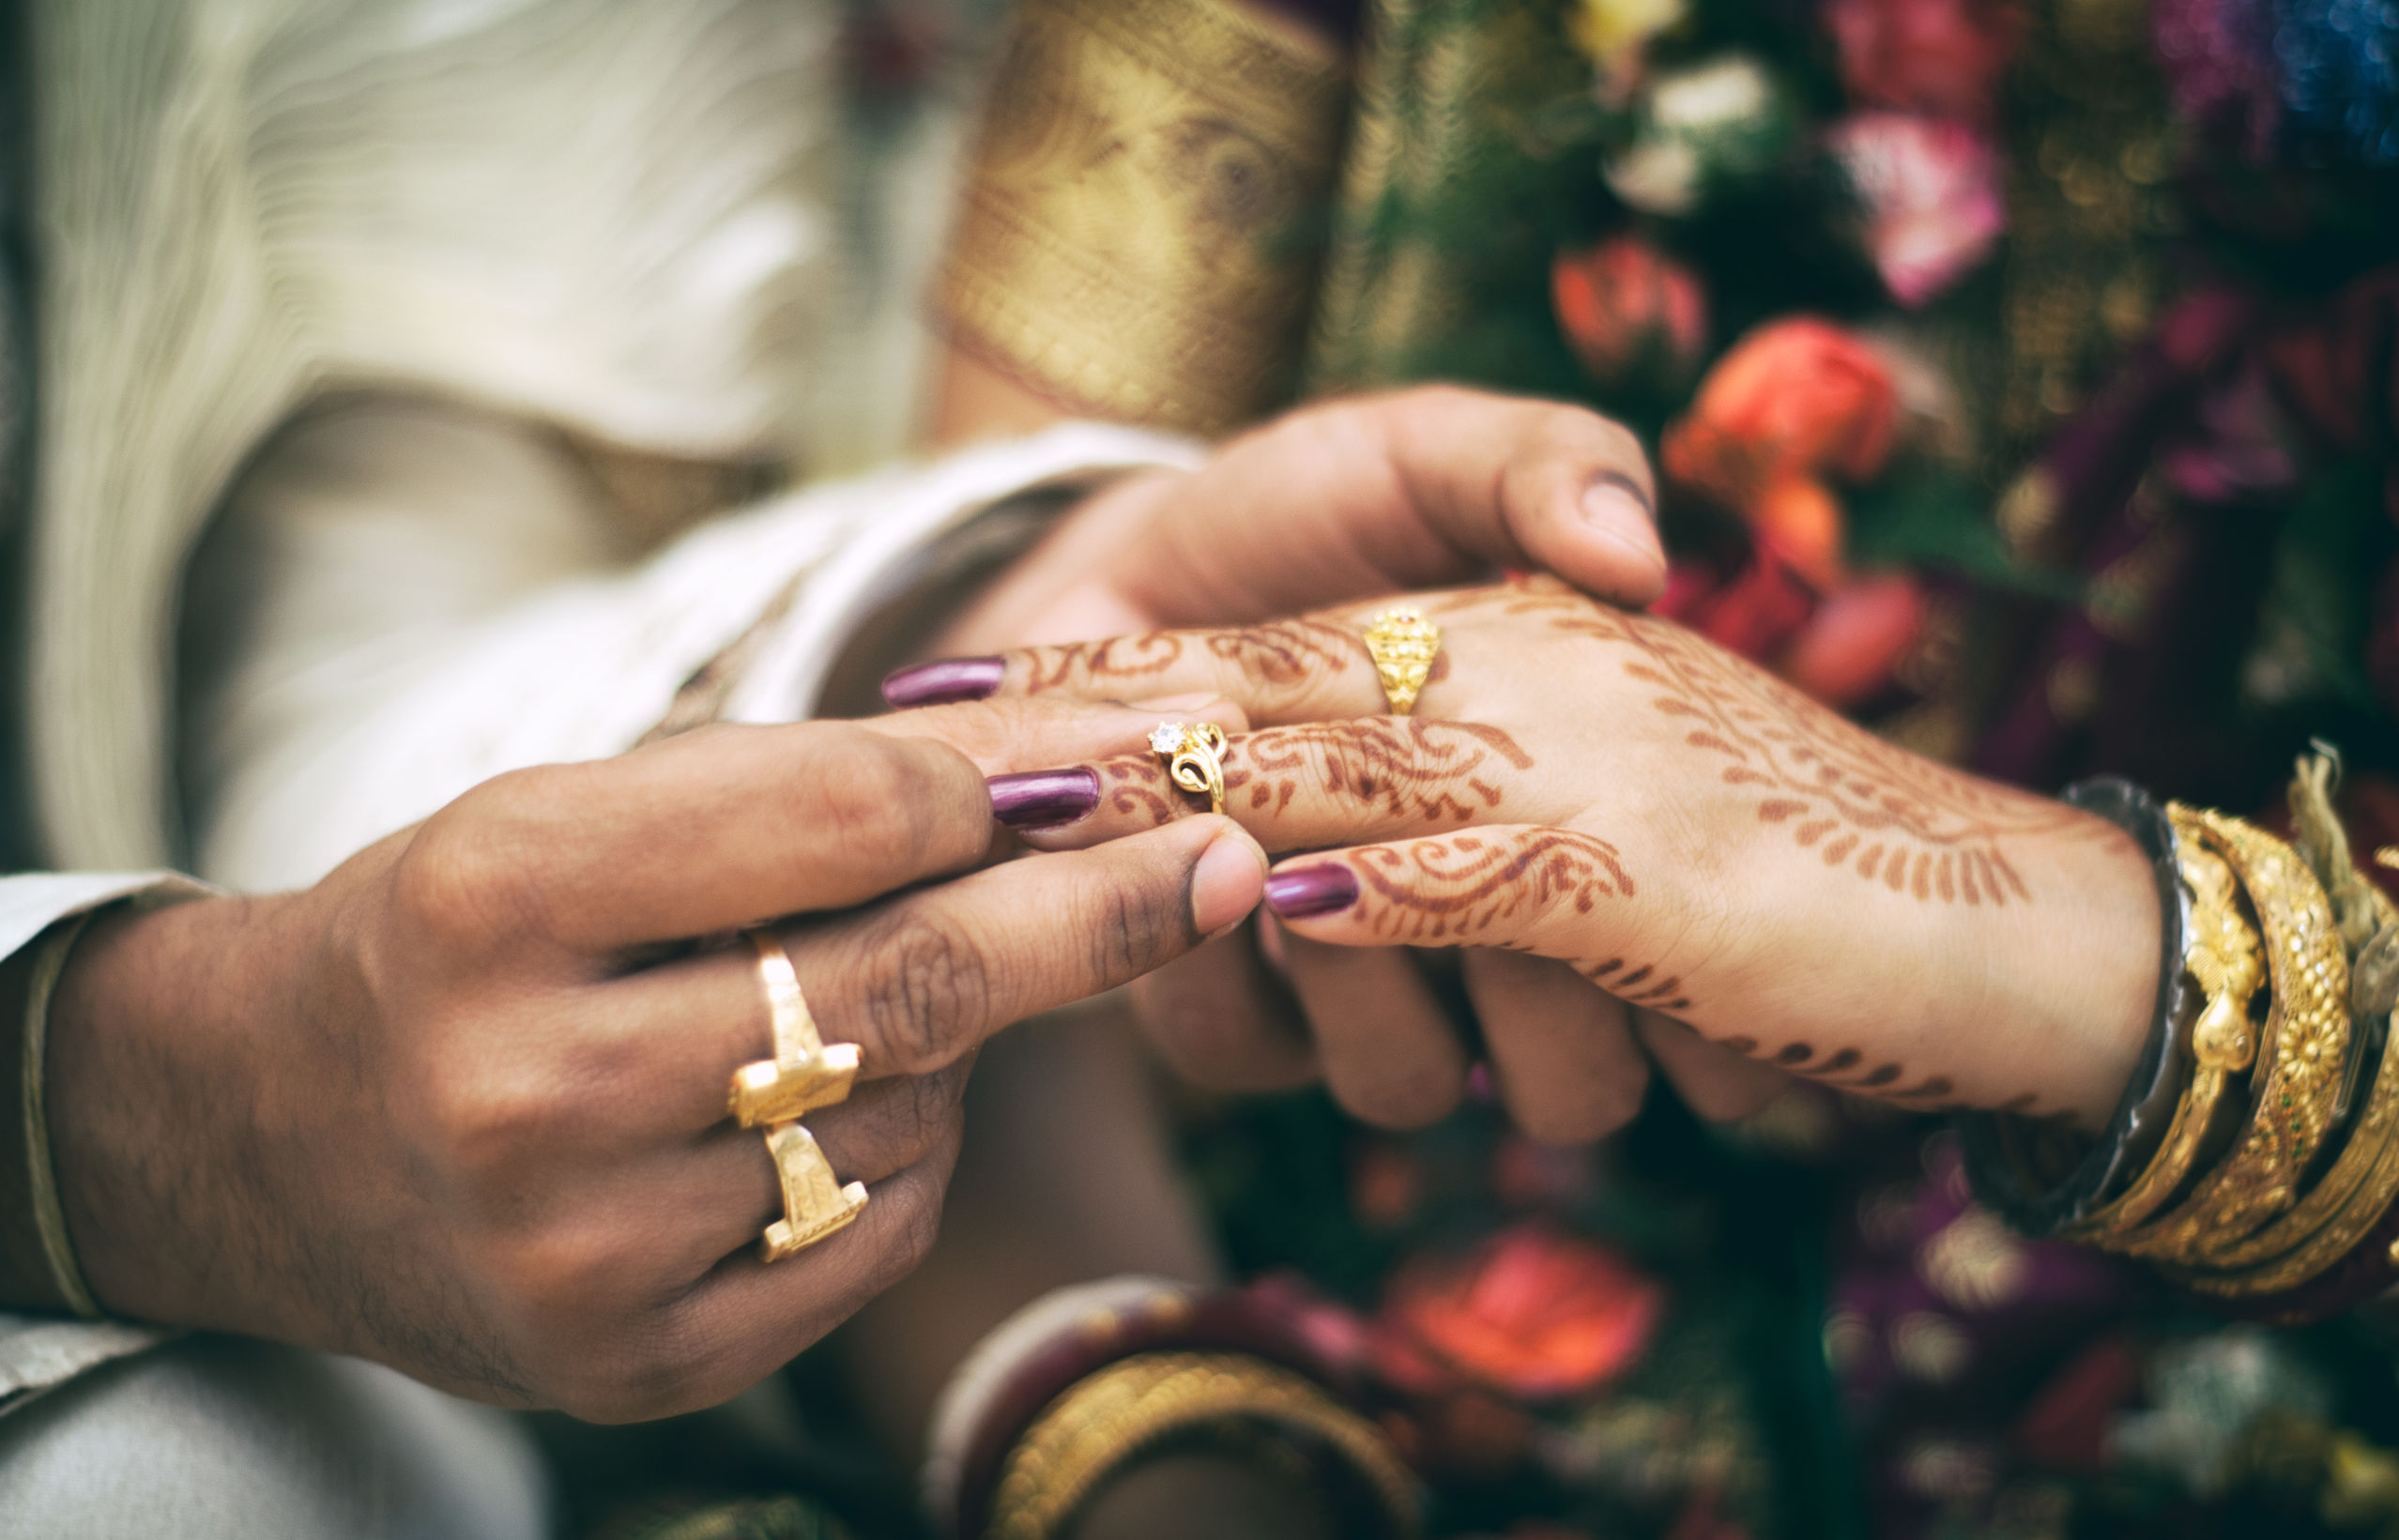 Signs Of Forced Marriage